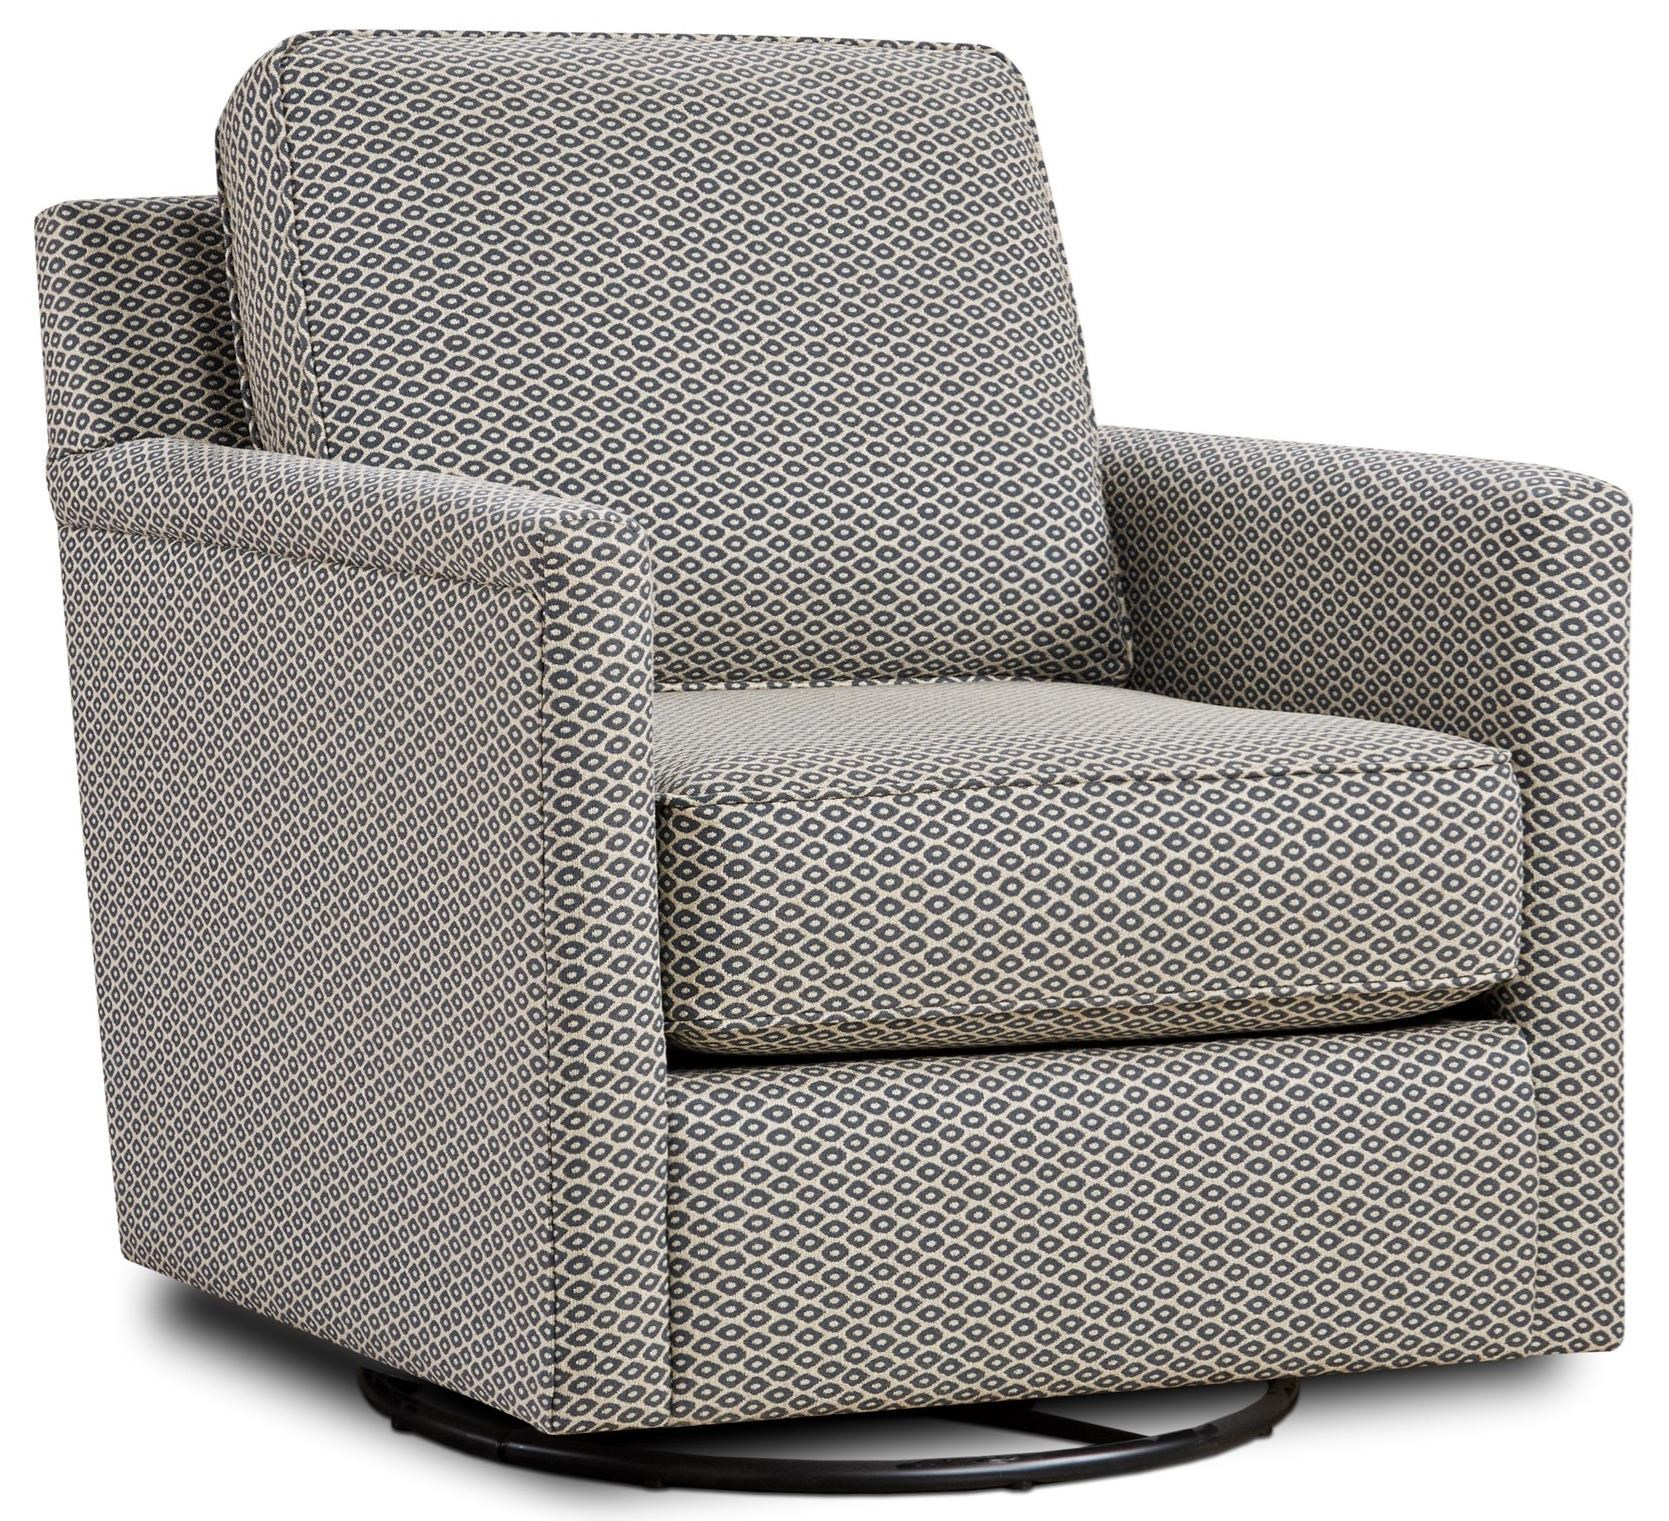 21-02 Swivel Glider Chair by Fusion Furniture at Story & Lee Furniture